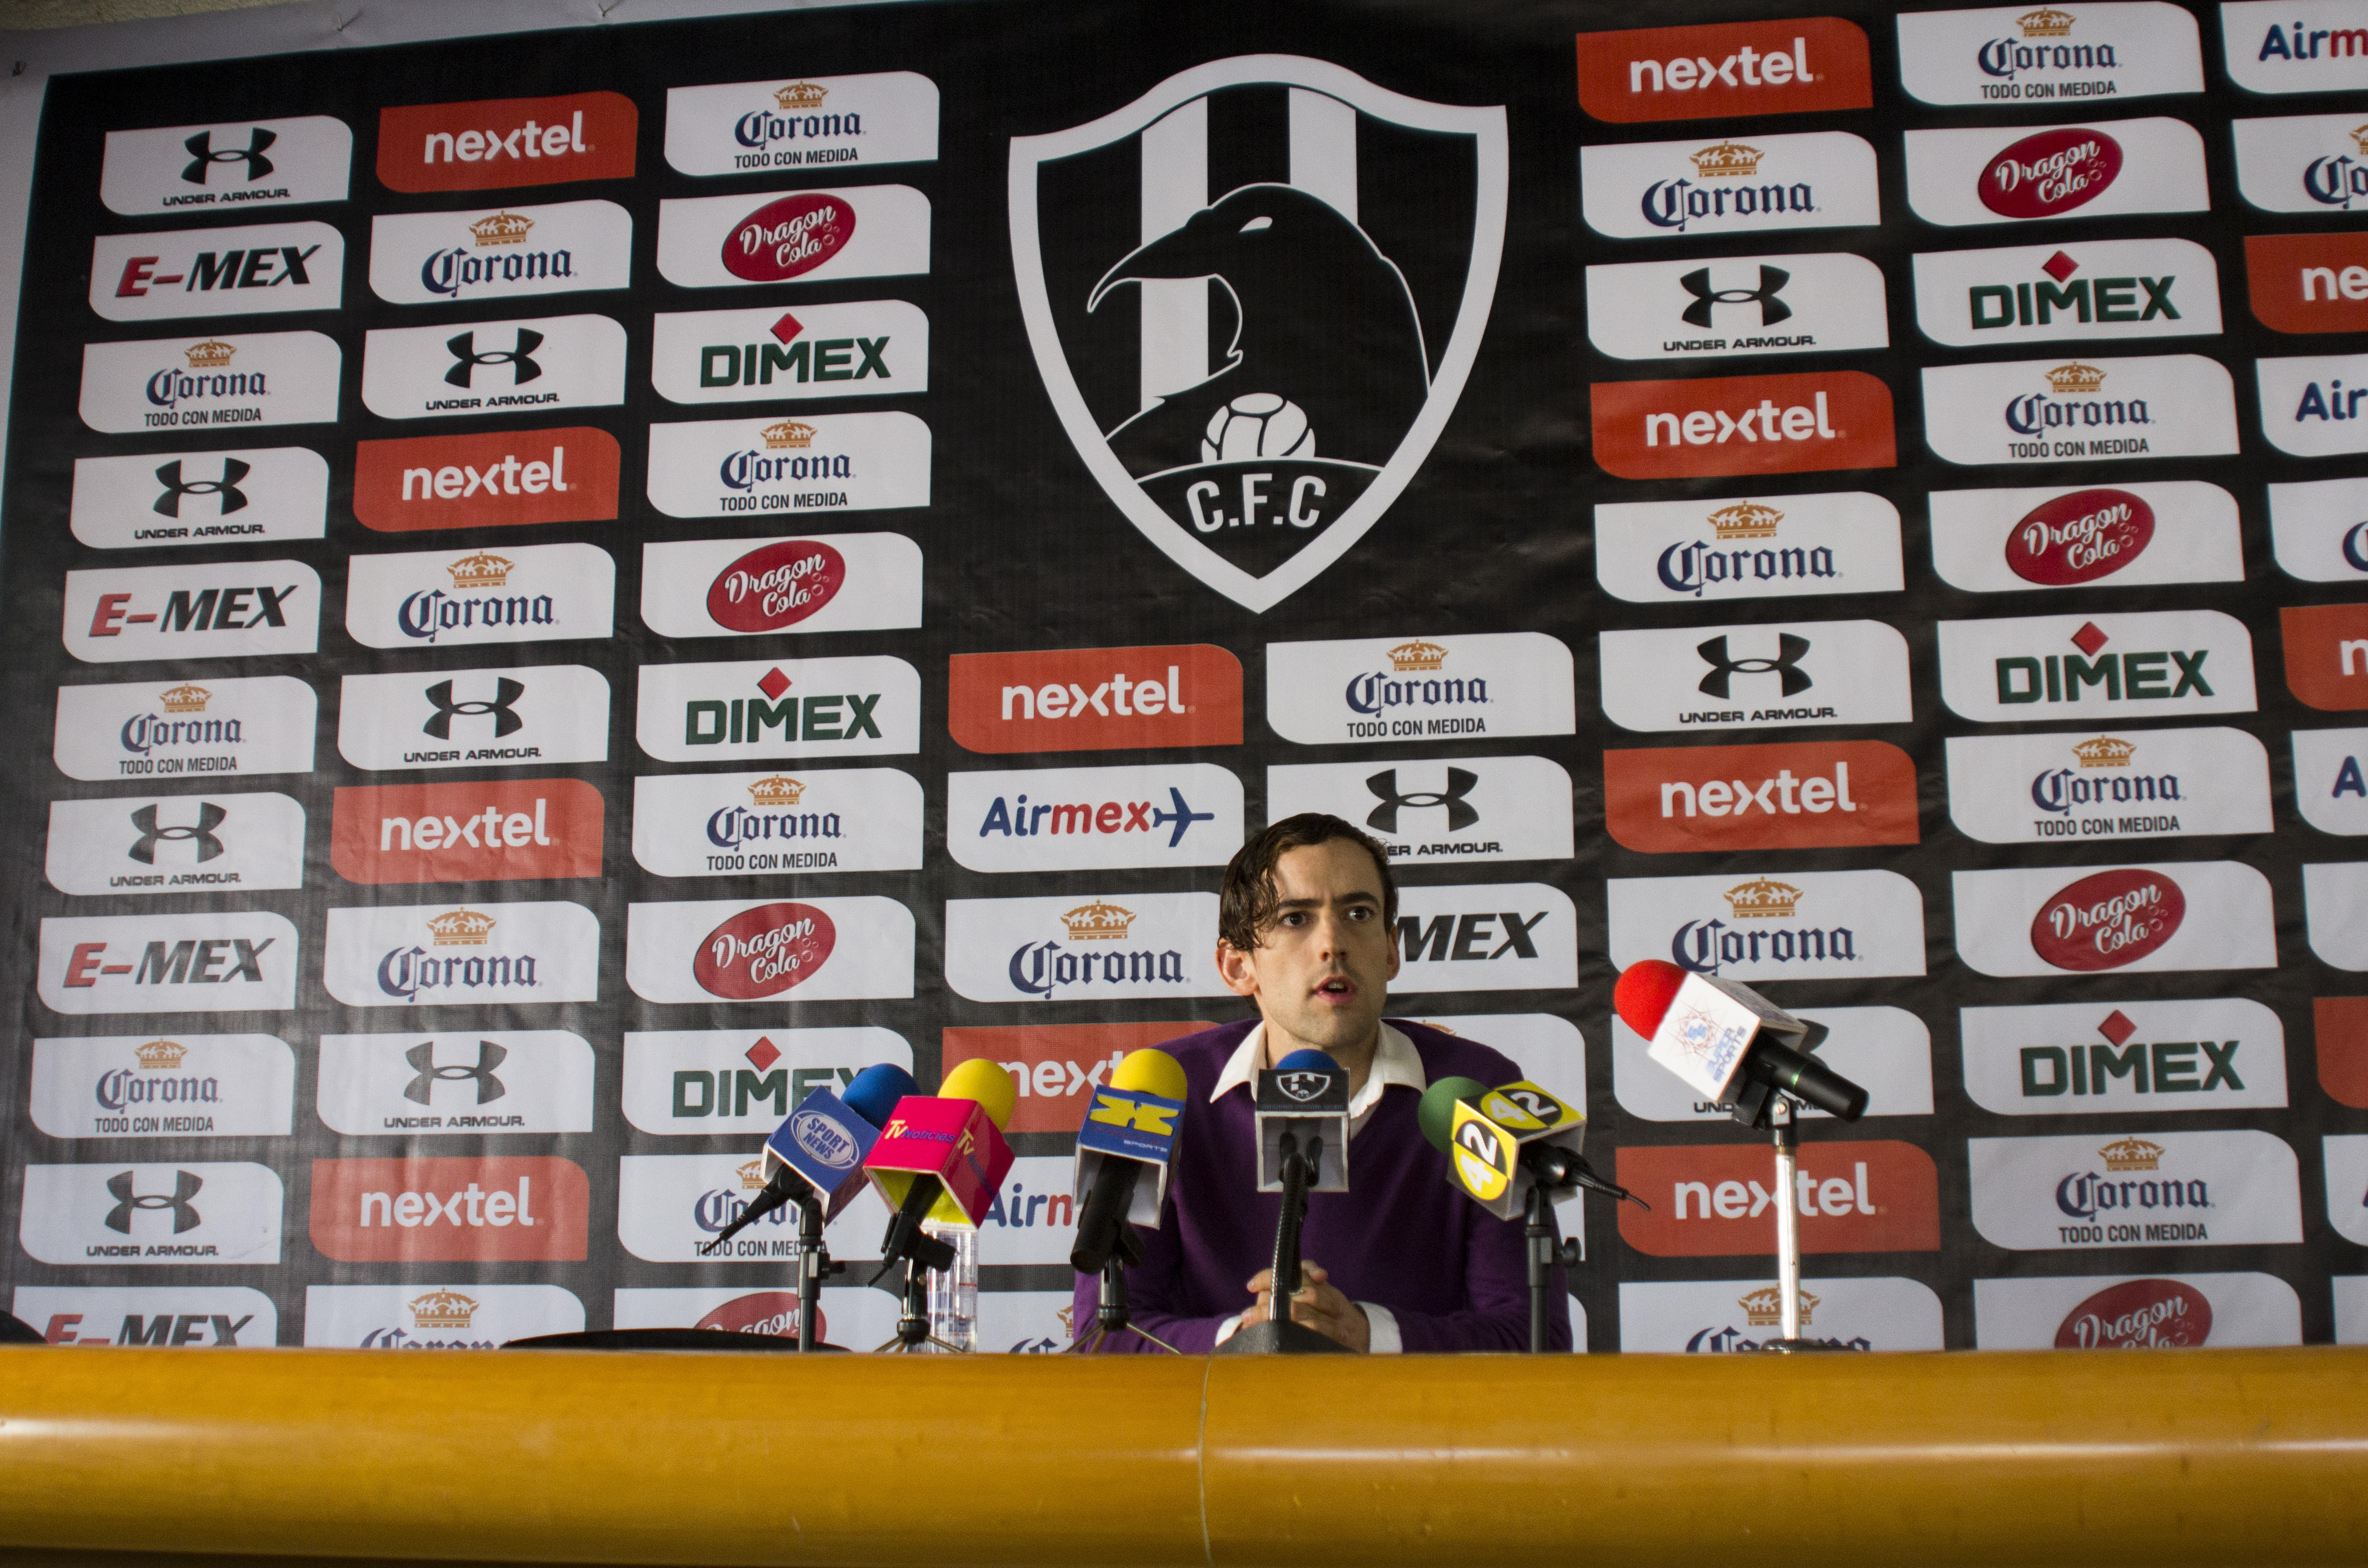 We Finally Have a Release Date for Season 3 of Netflix's Soccer Comedy 'Club de Cuervos'